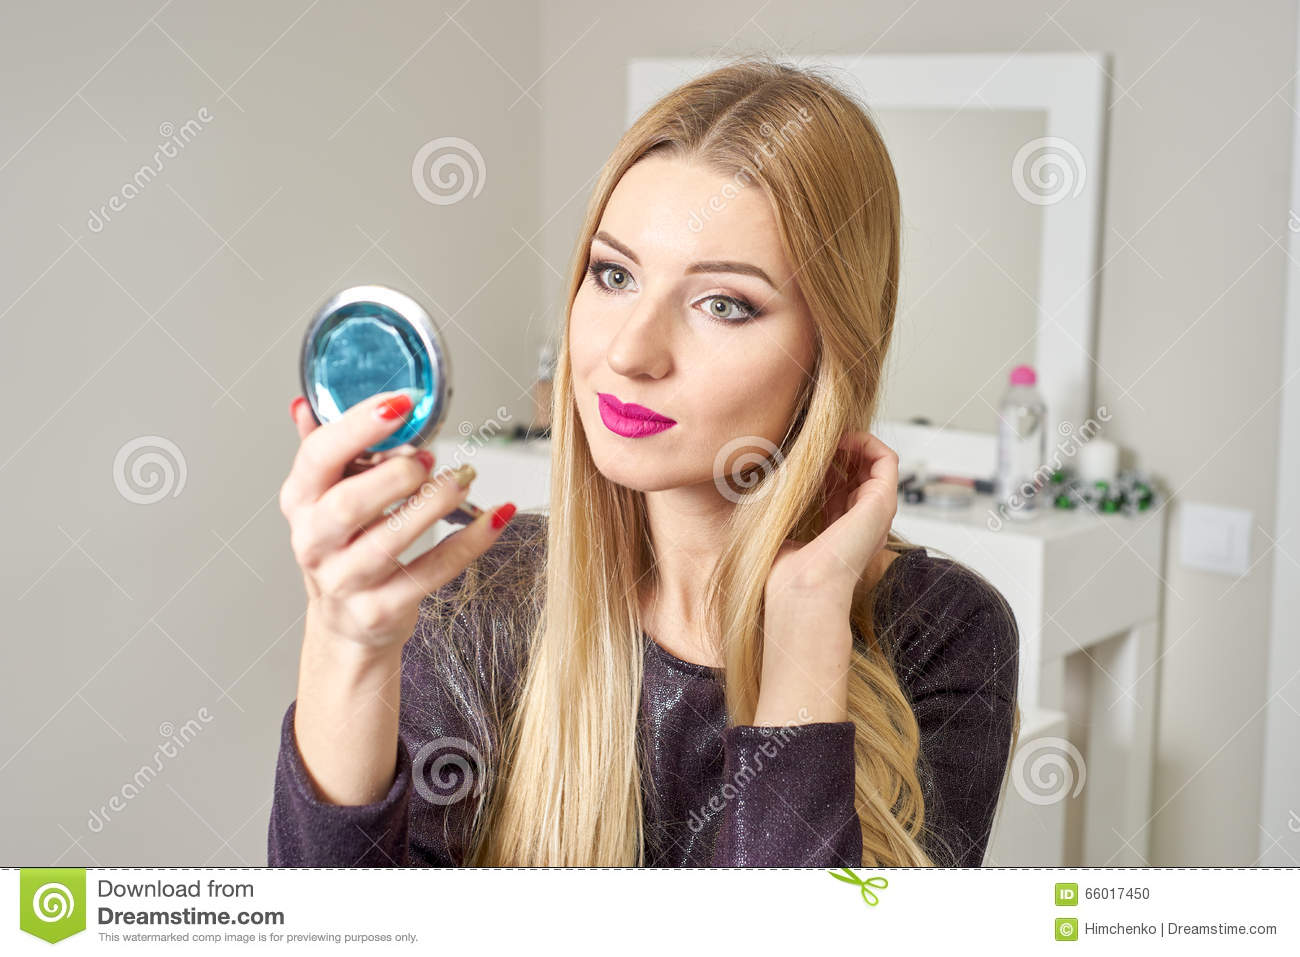 Reflection Of Young Beautiful Woman Applying Her Make Up